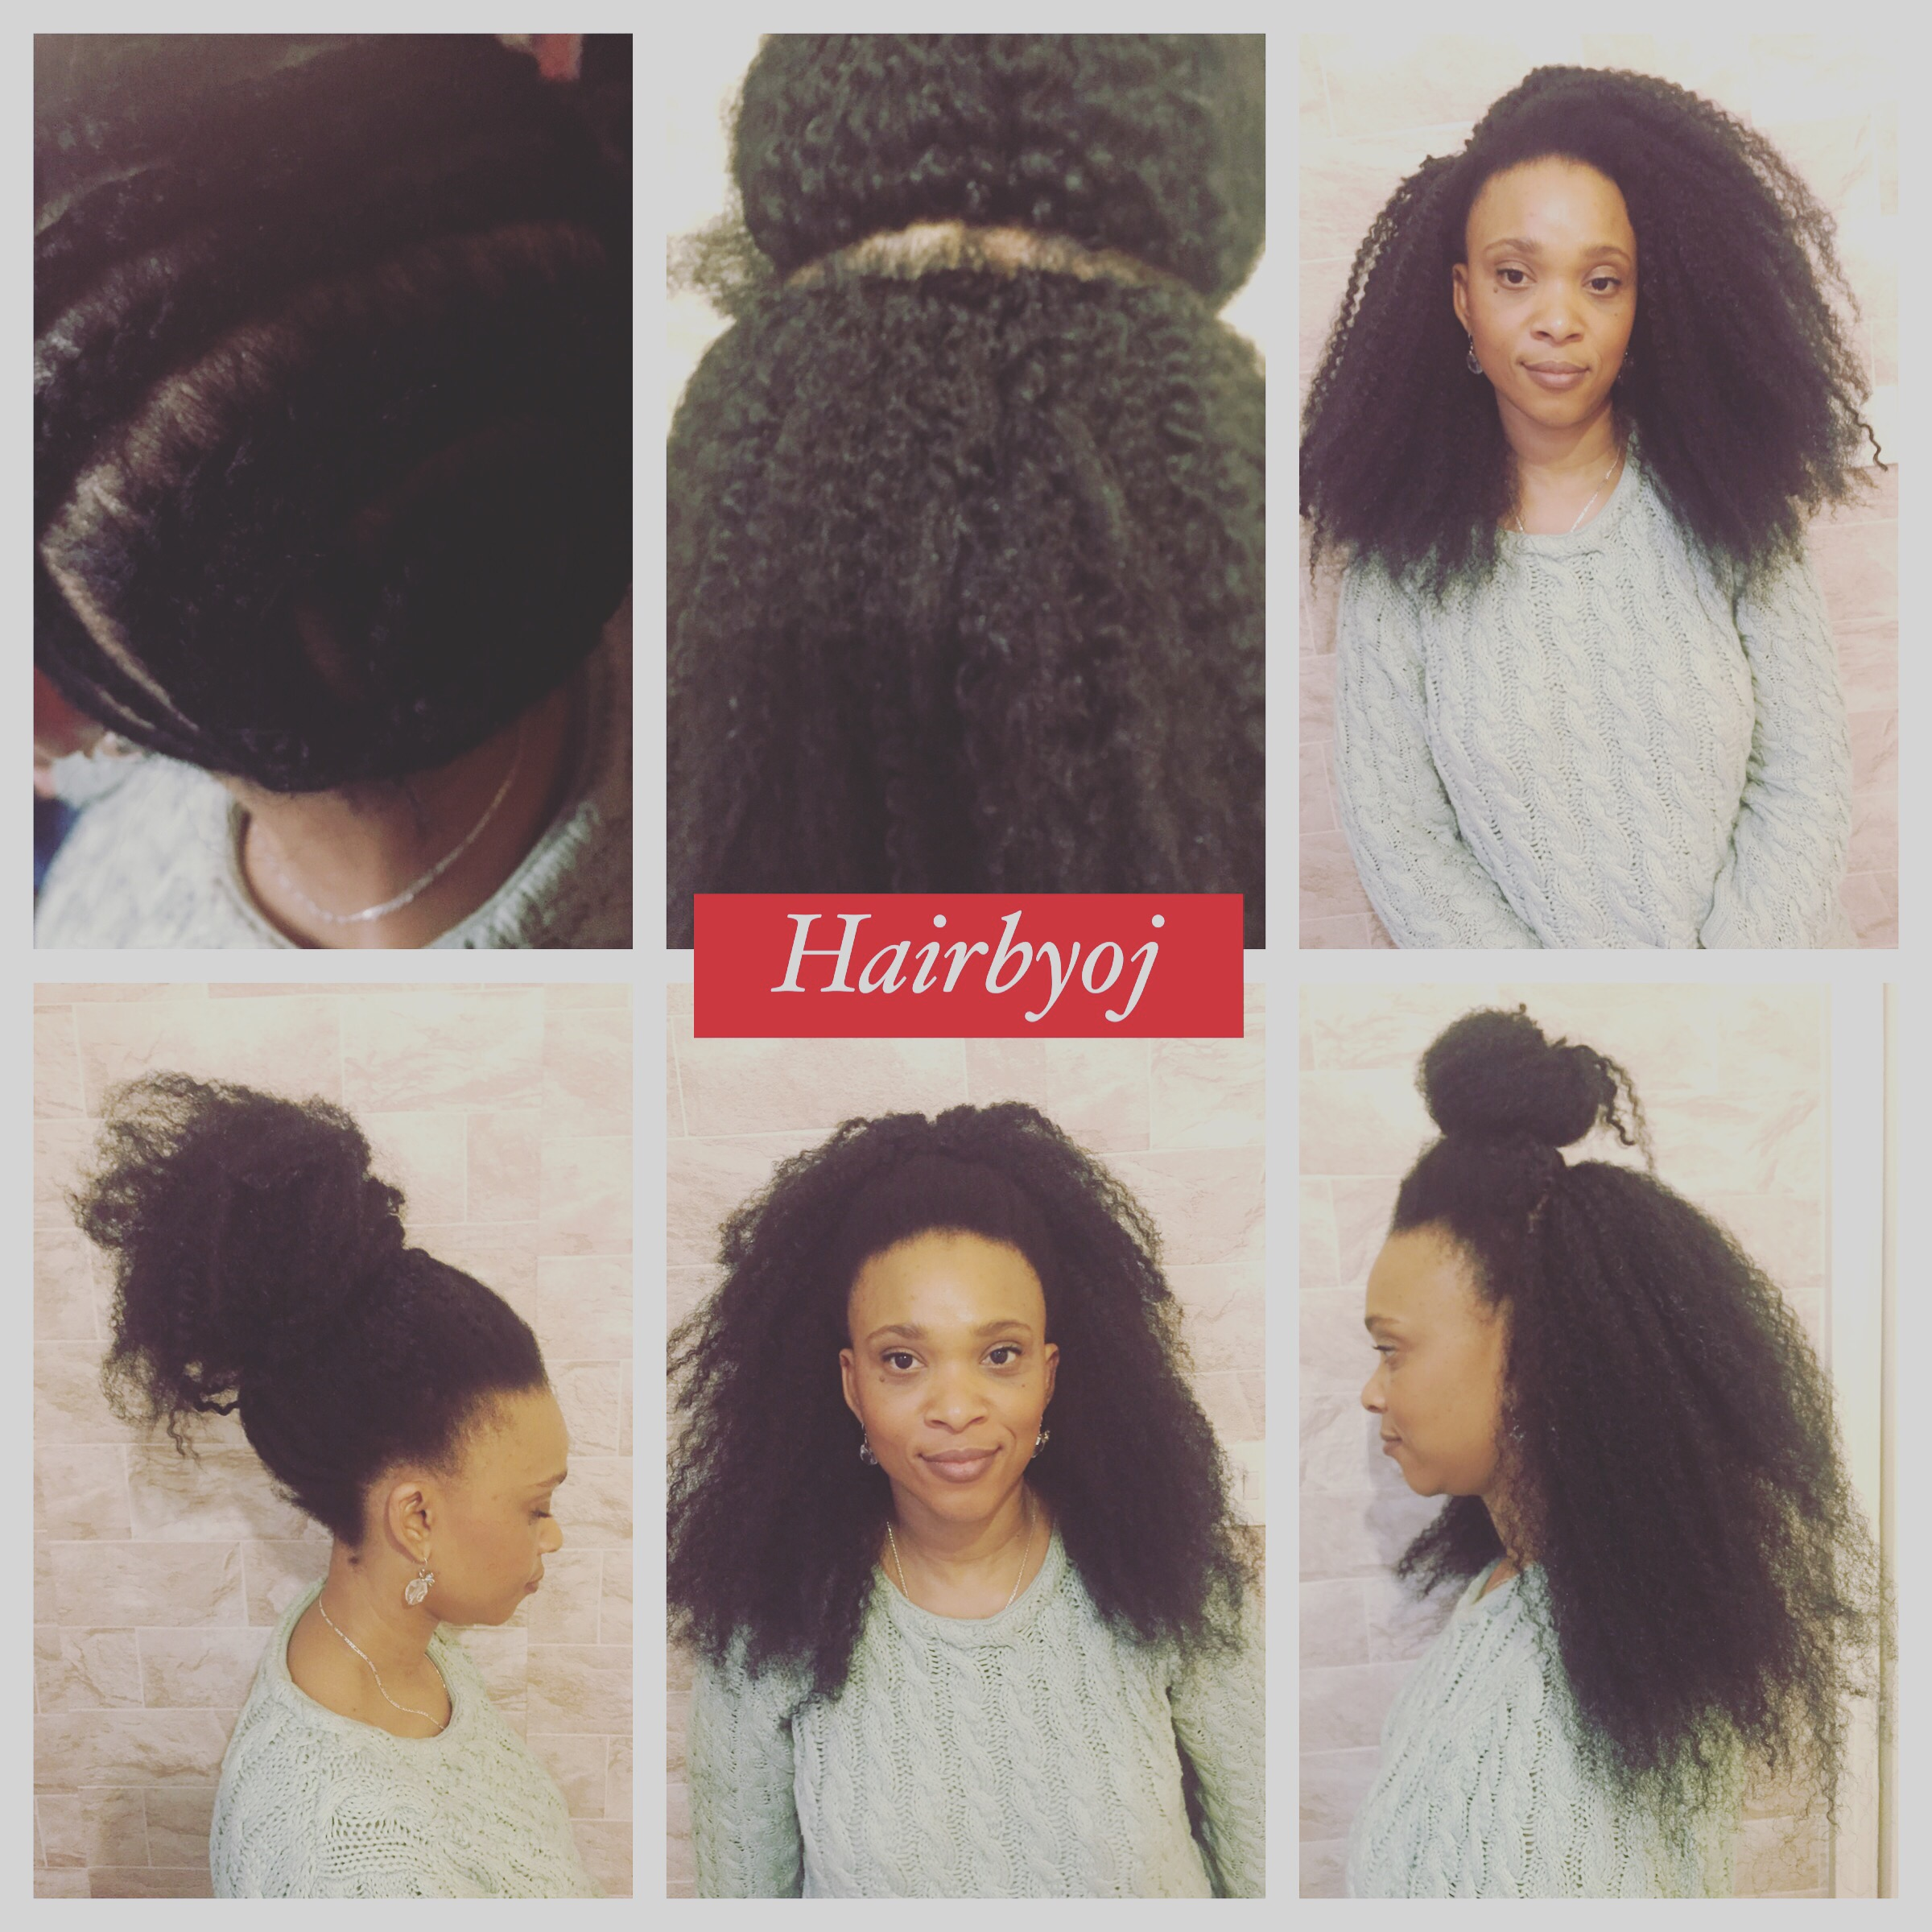 Crochet Braids With Leave Out : ... crochet braids with Marley hair and perimeter leave out, no leave out